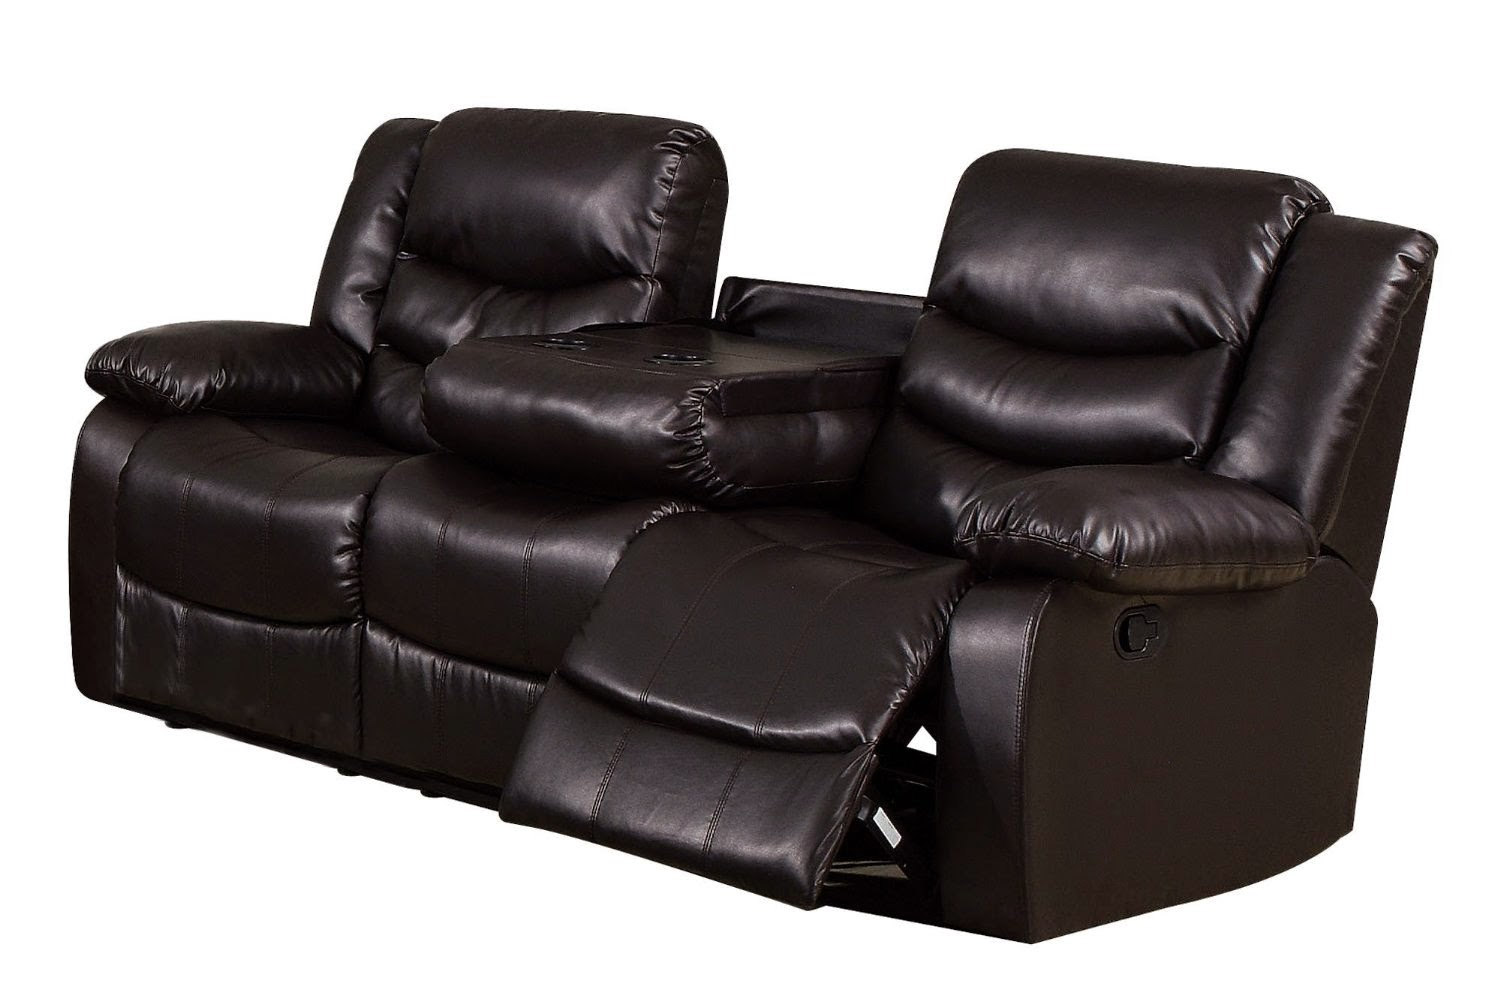 Reclining Sofas For Sale: Dual Reclining Sofa With Drop ...